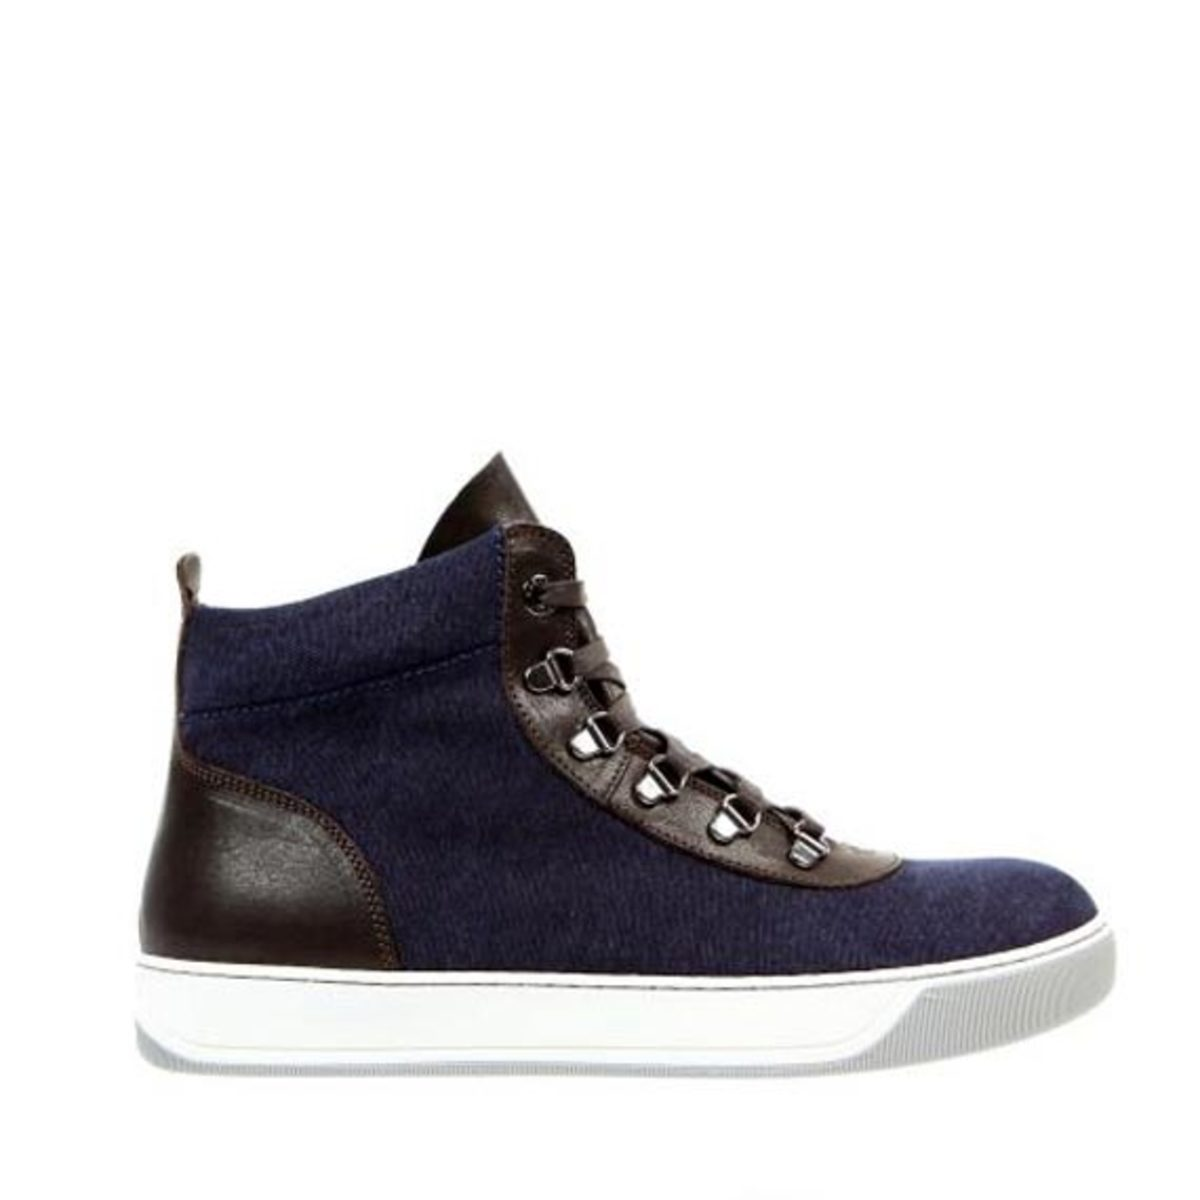 lanvin-ss10-ankle-sneakers-04